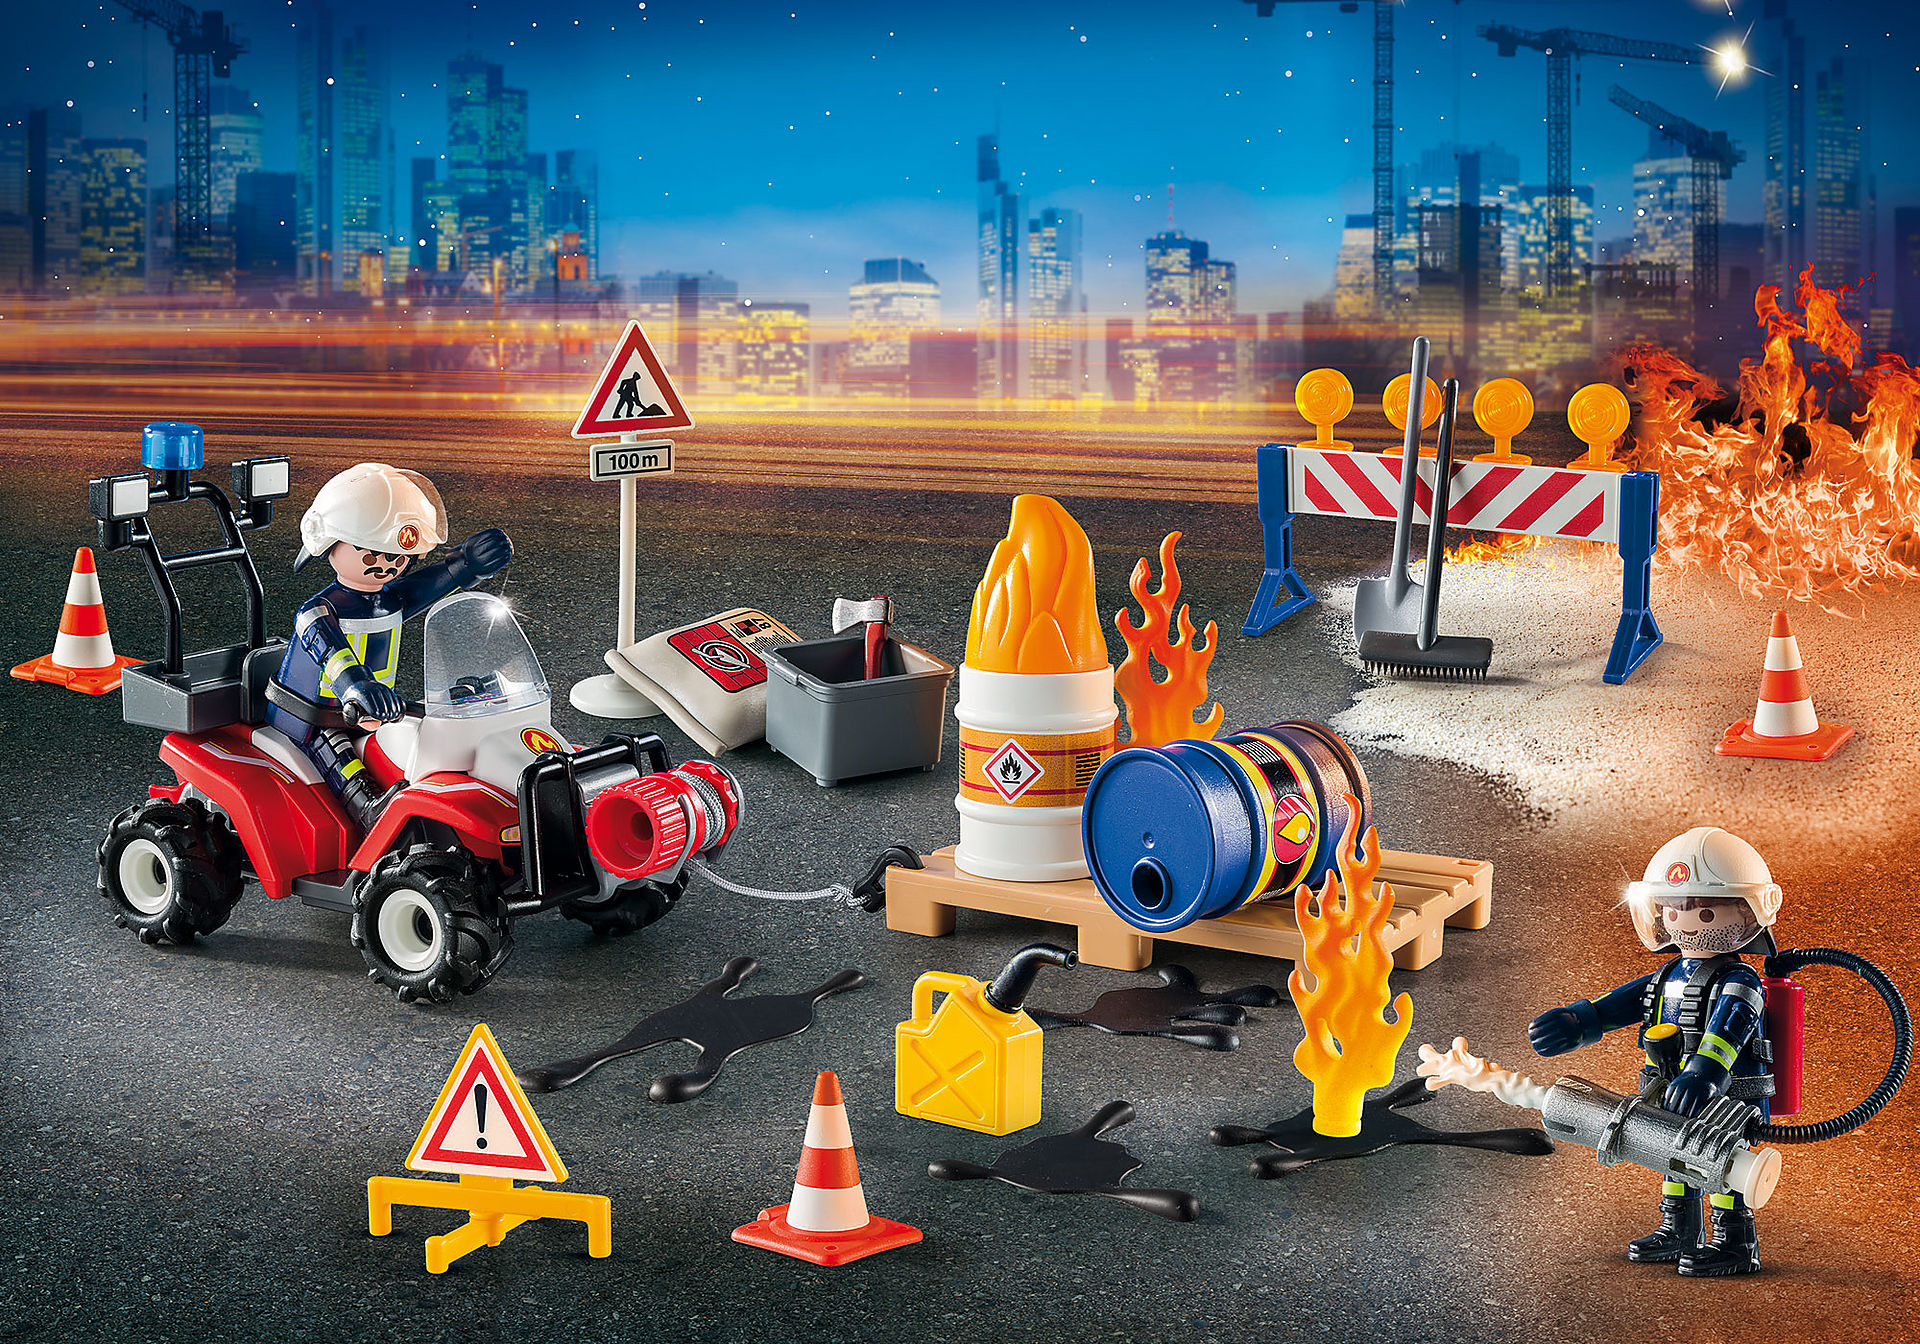 9486 Advent Calendar - Construction Site Fire Rescue zoom image3